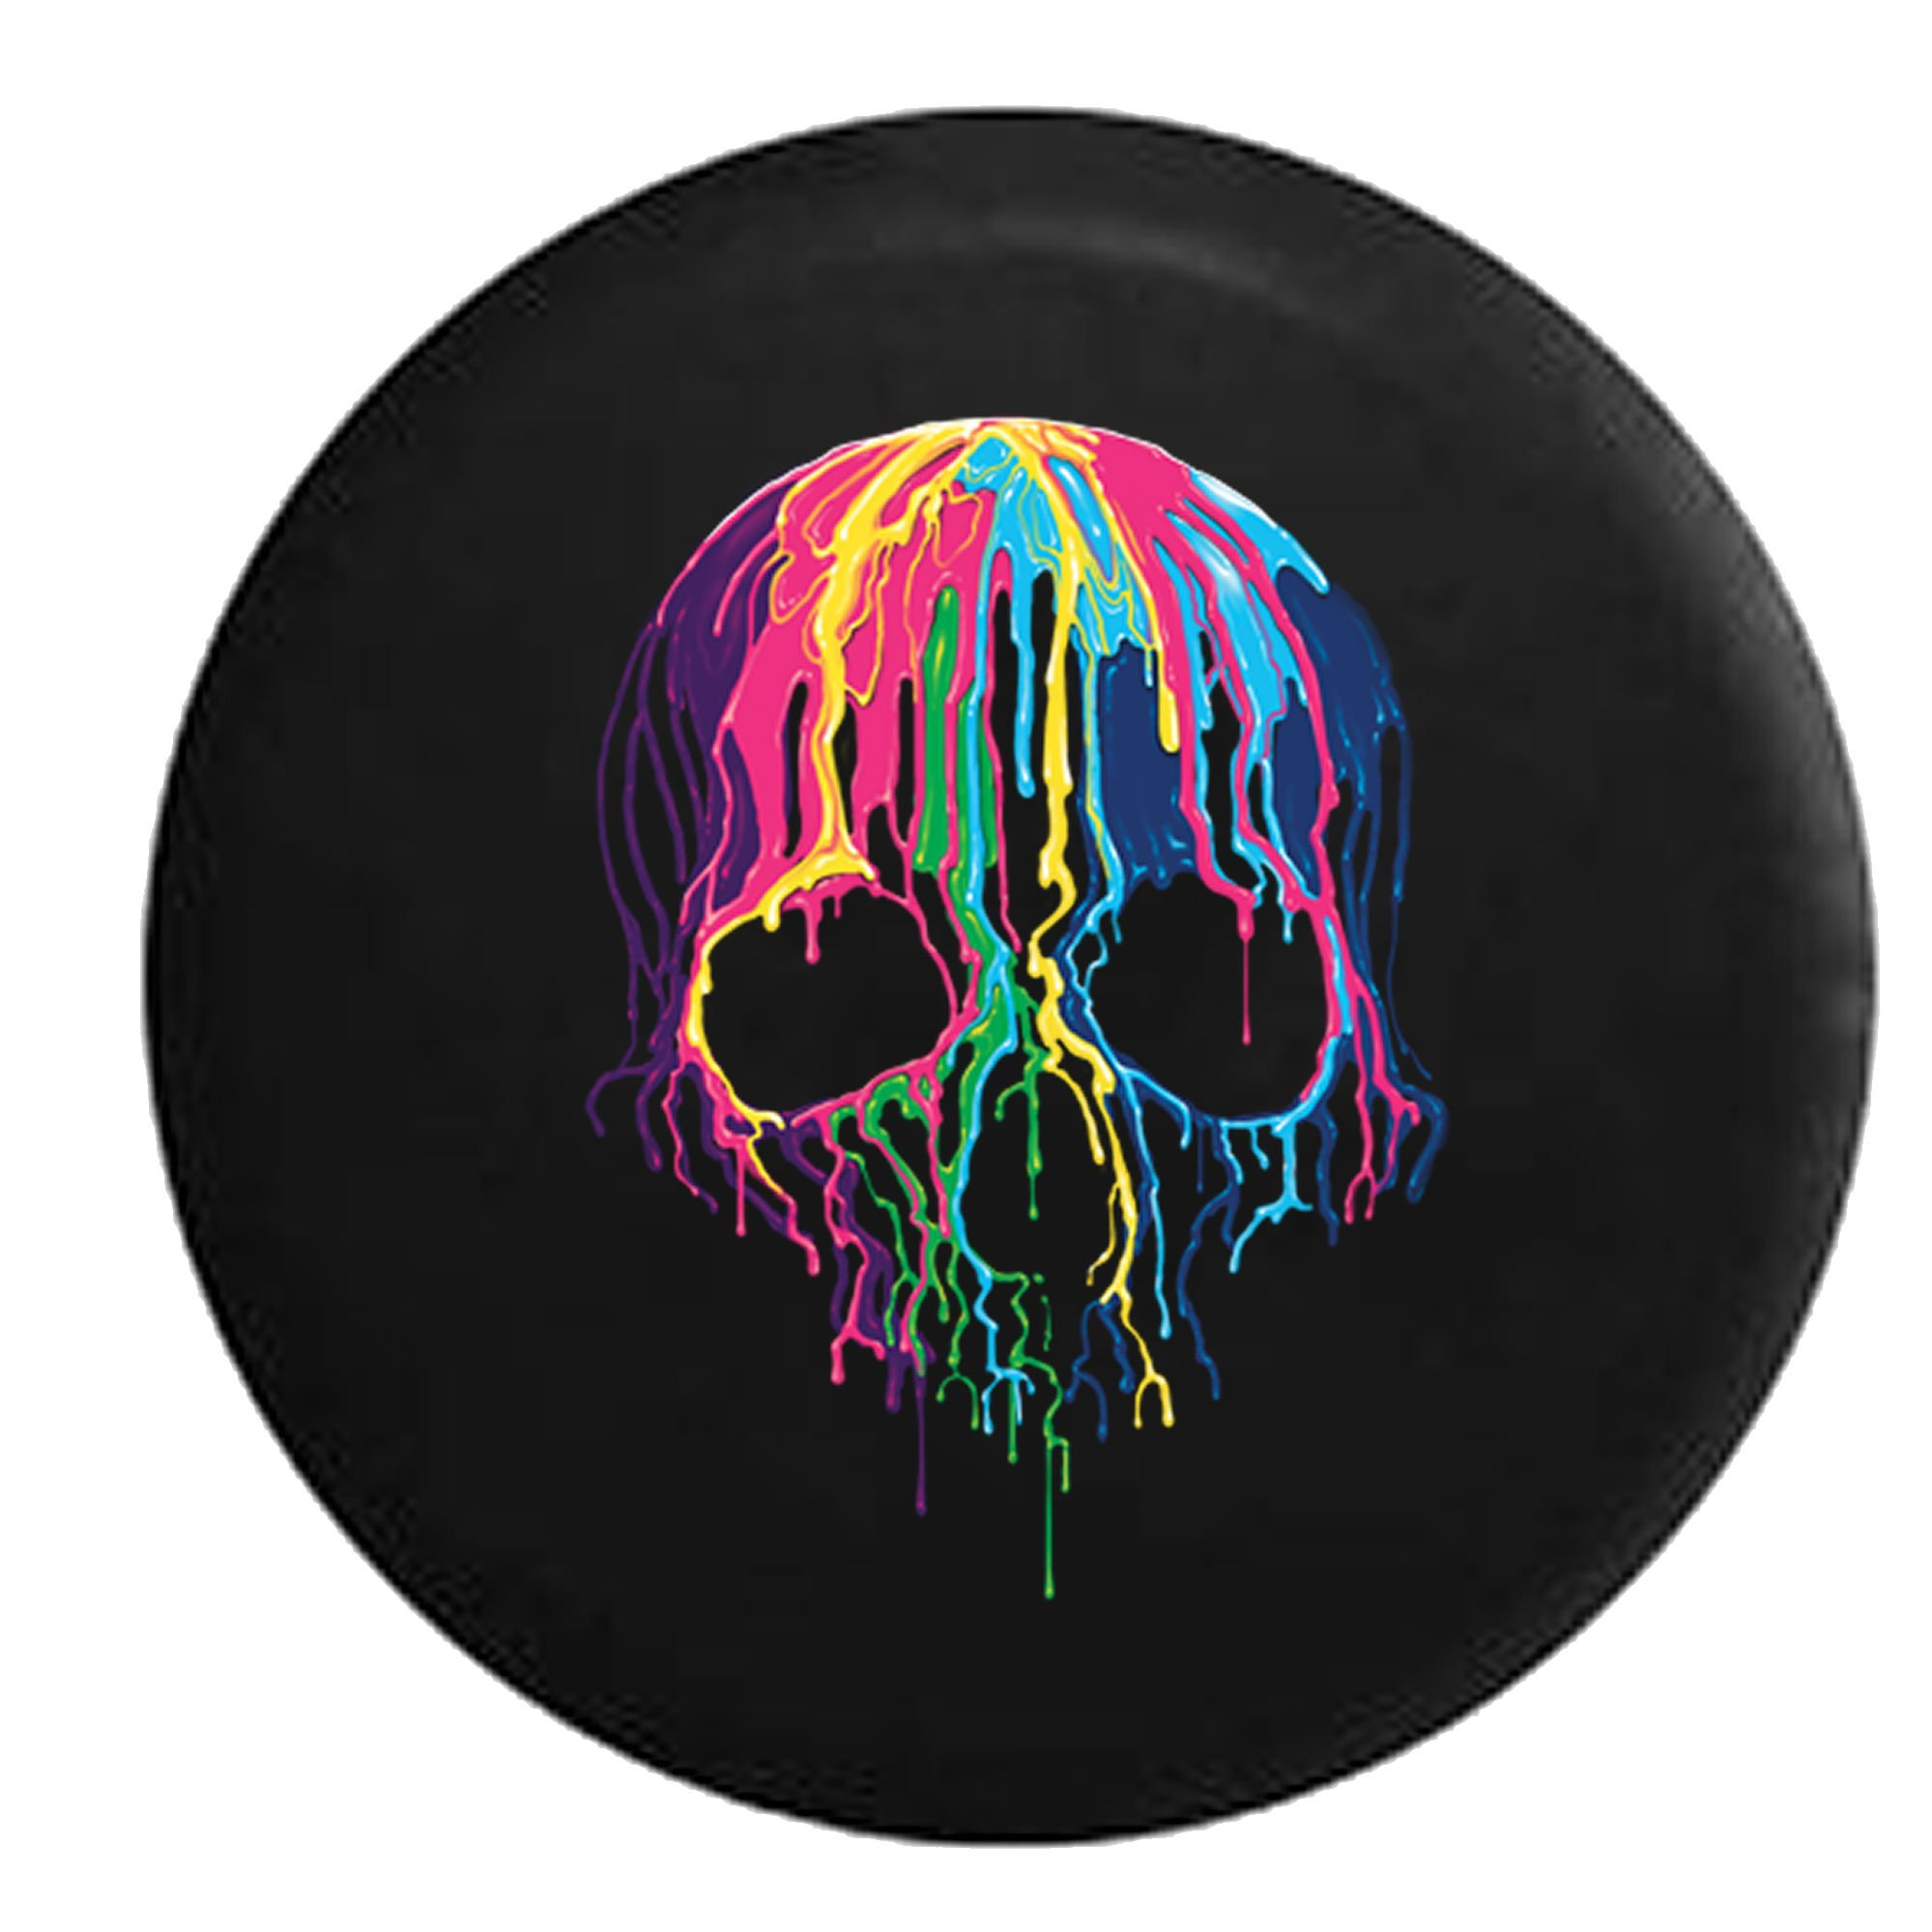 American Unlimited Melting Wax Skeleton Skull Neon Colors Spare Tire Cover (Fits: Jeep Wrangler Accessories or SUV Camper RV) Black 33 in